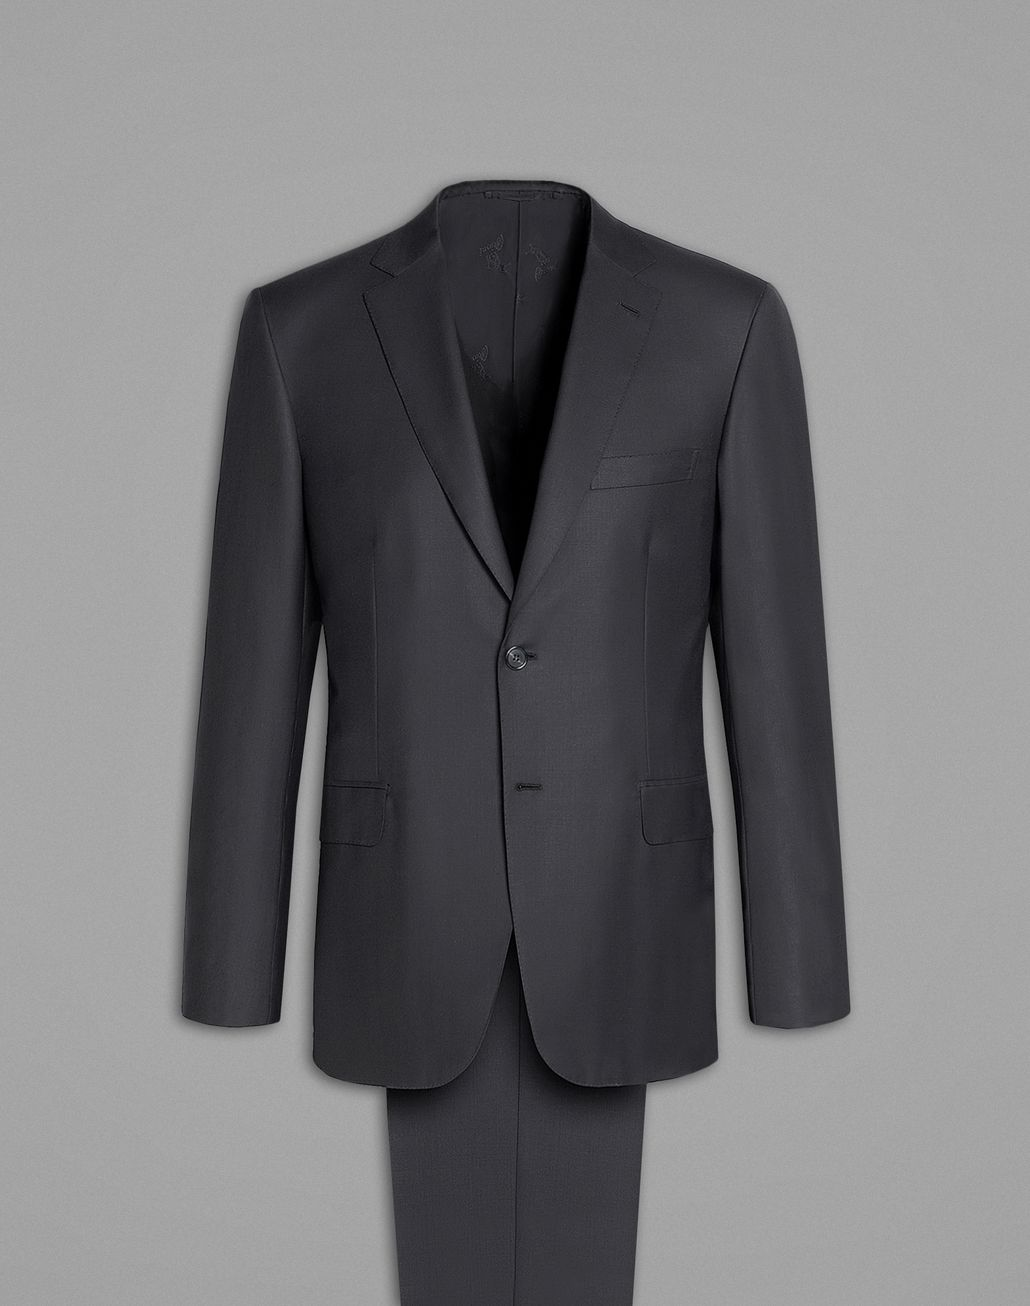 BRIONI Costume Brunico couleur charbon Suits & Jackets Homme f